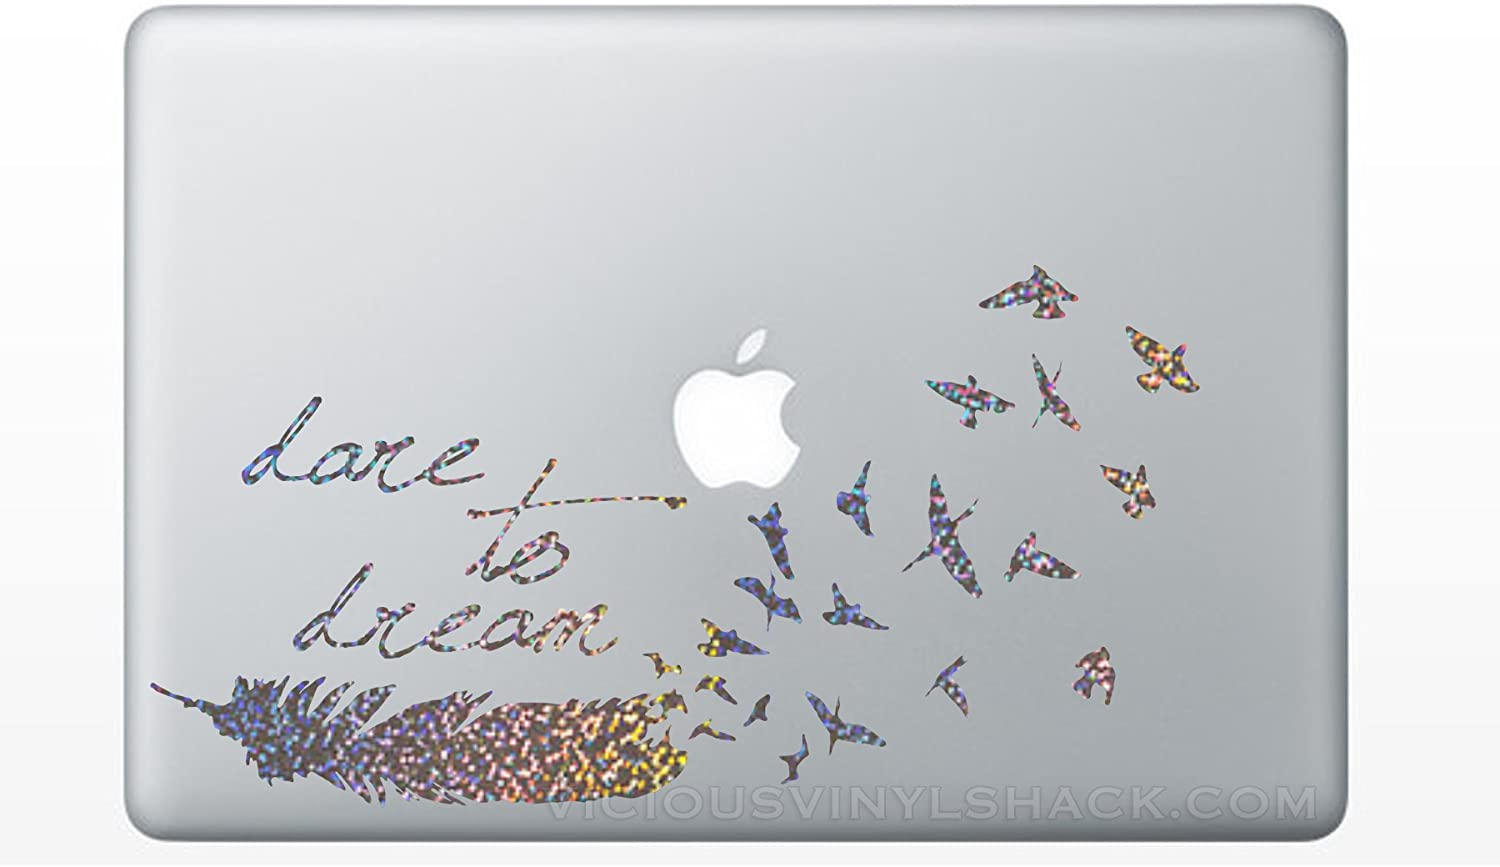 SILVER SPARKLES Dare to Dream Feather Turning into a Flock of Birds Quote Vinyl Decal Stickers for MacBook Laptop Car Love Forever Birds Always Relationships Feathers Peace Tough Strength Strong Strength Hope Inspiration Dreamer Love Bird Flying Glitter Shiny